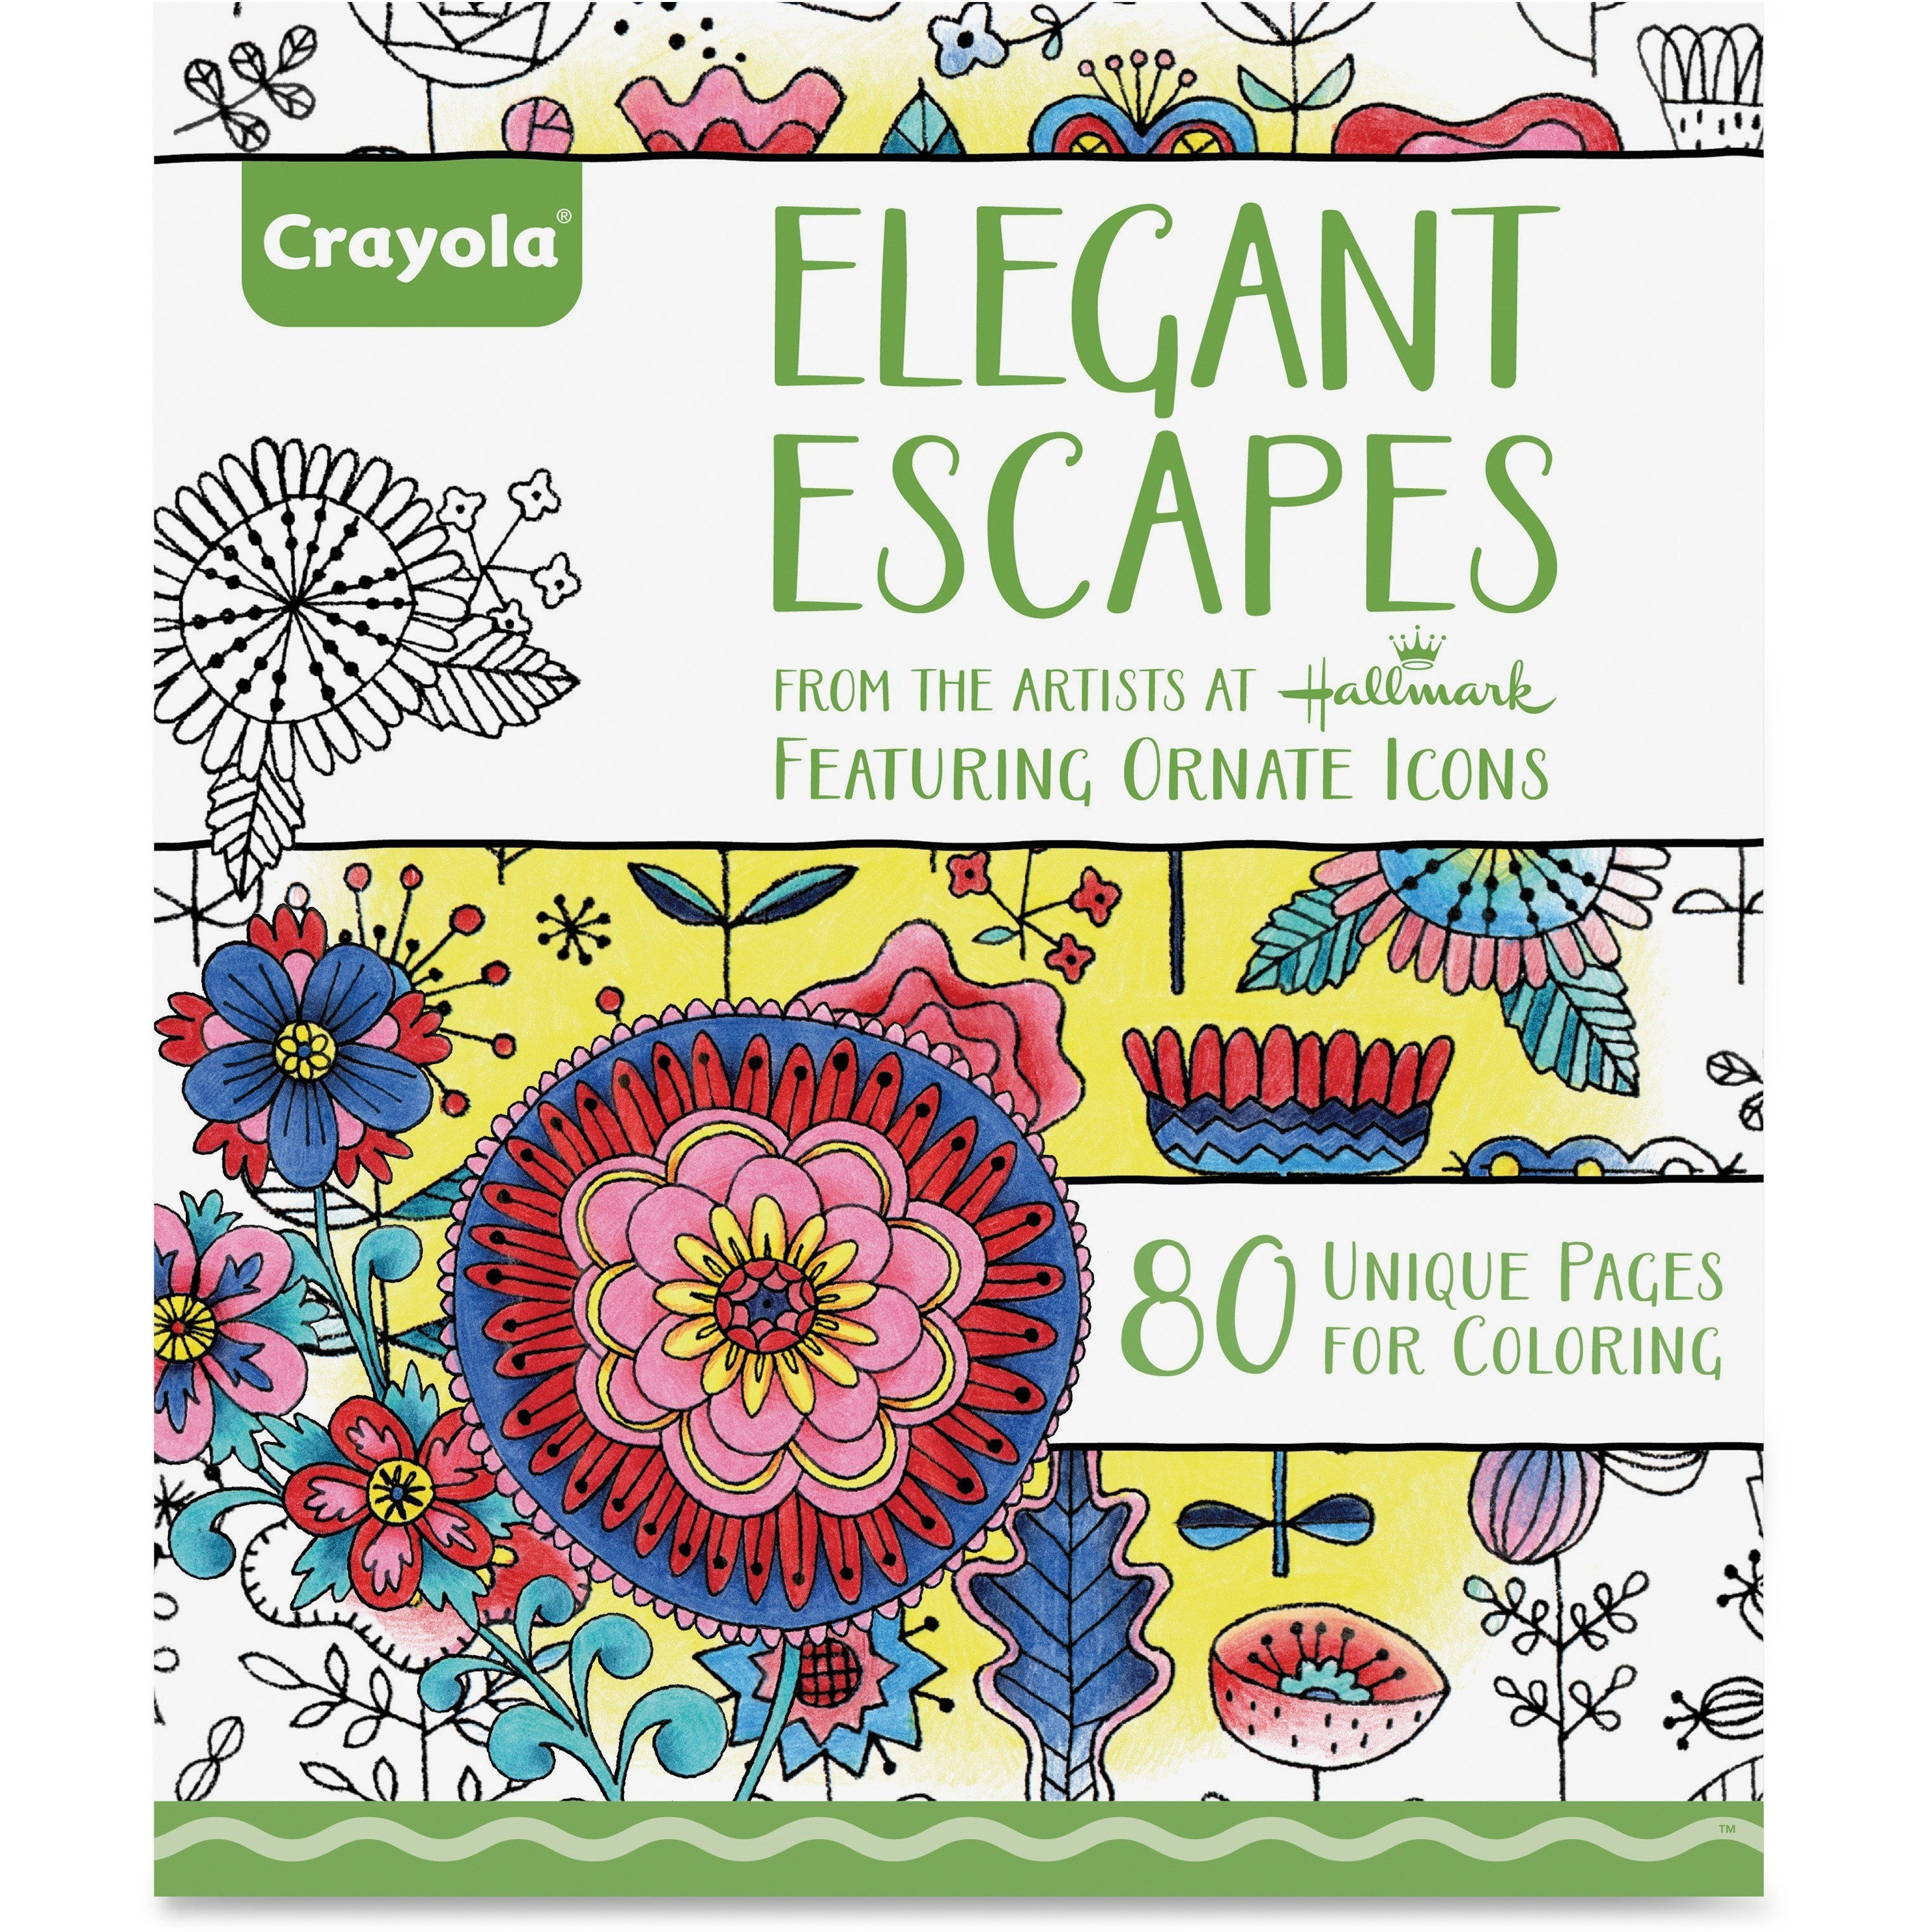 Adult Coloring Books Walmart  Awesome Adult Coloring Books Walmart at Coloring Page